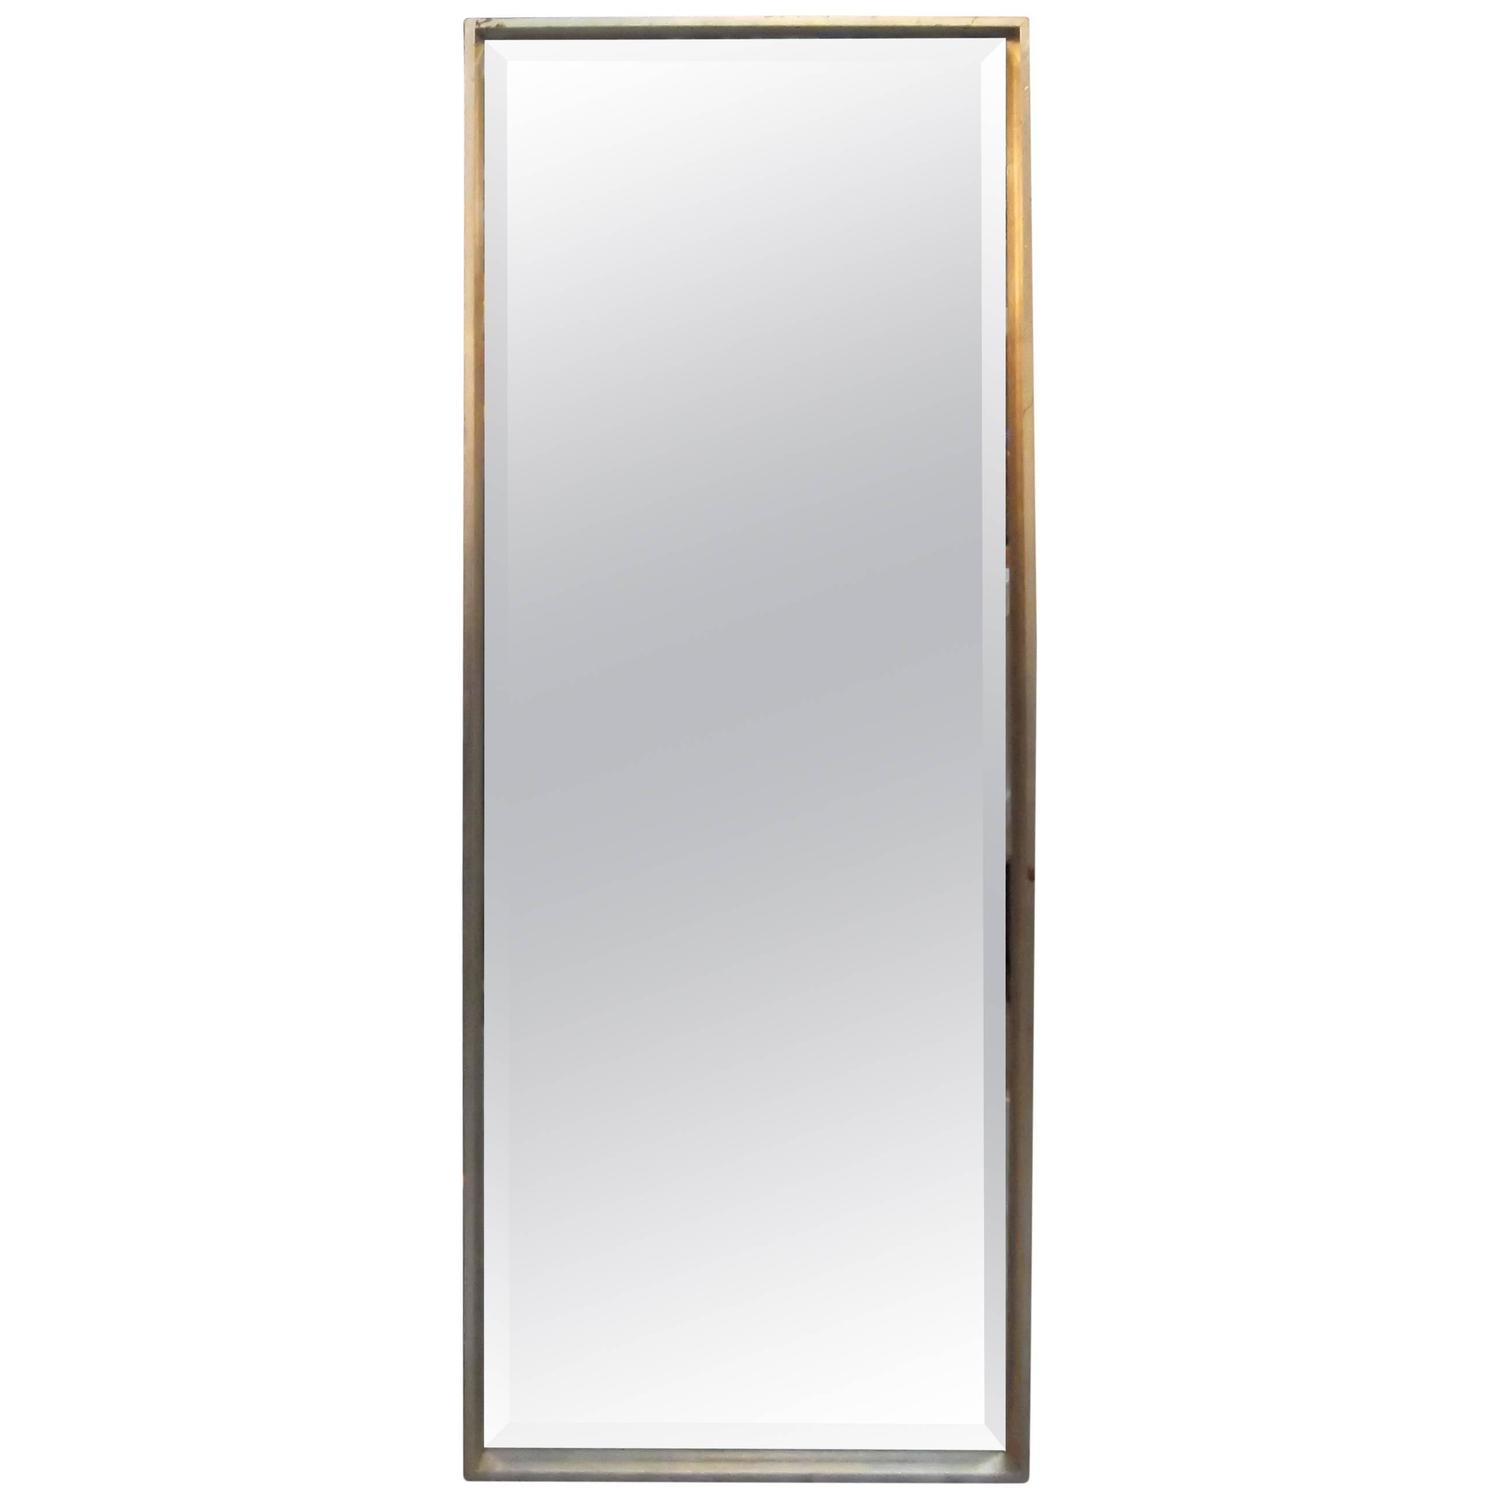 Single silver gilt tall mirror for sale at 1stdibs for Tall mirrors for sale